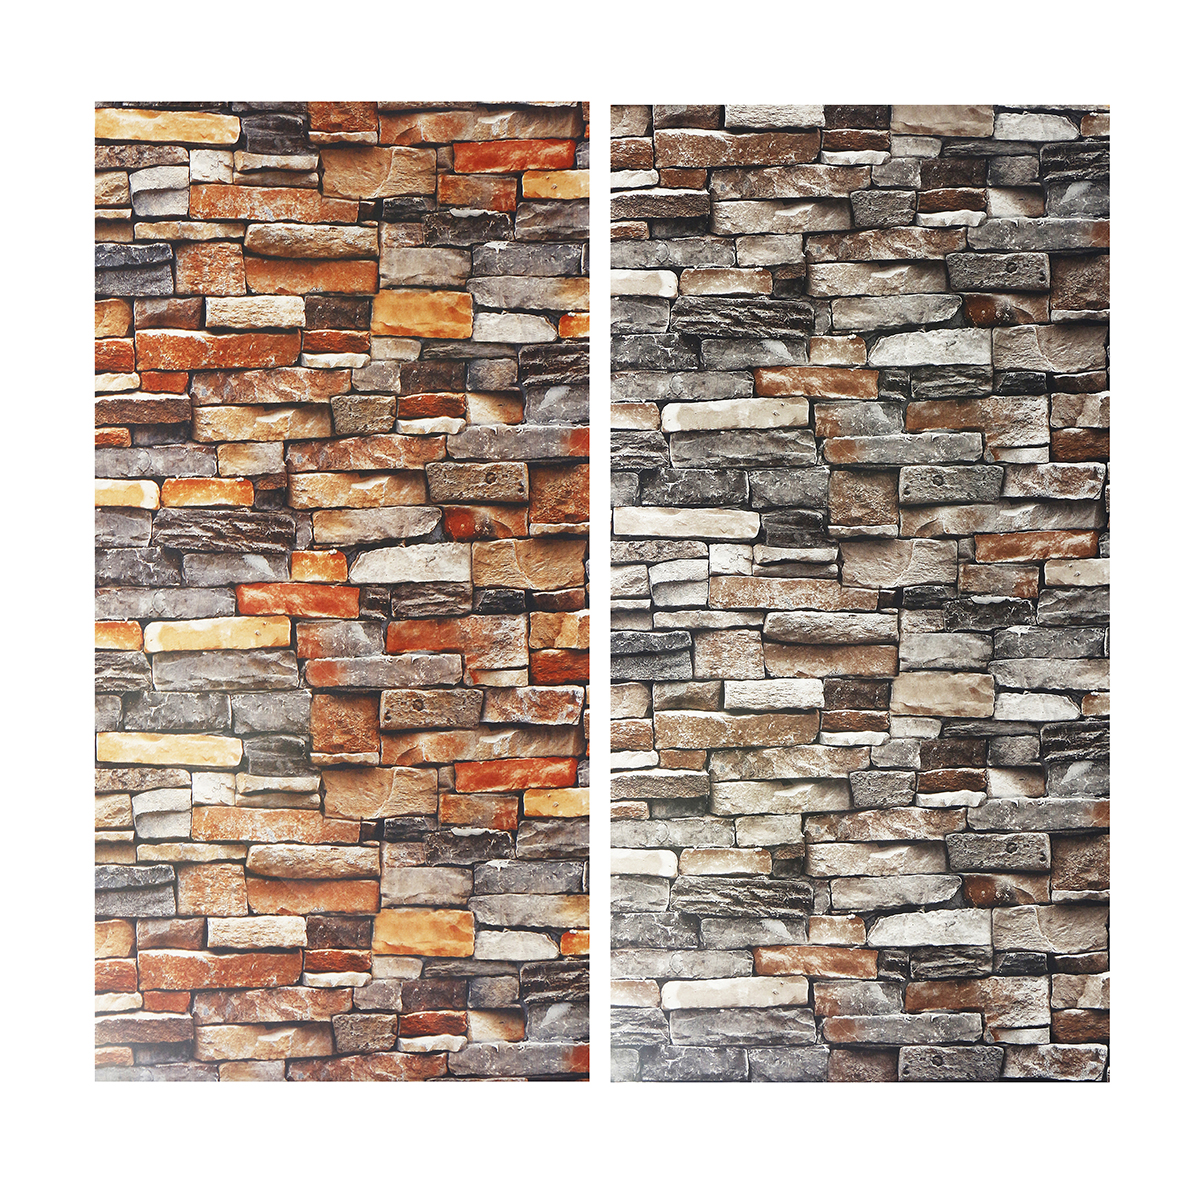 Rustic Vintage 3D Faux Brick Wallpaper Roll Vinyl Old Stone Wall Paper For Home Living Room Restaurant Cafe Decor 0.53x9.5m stone brick 3d wallpaper bedroom living room background wall vinyl retro wall paper roll rustic faux stone wallpapers